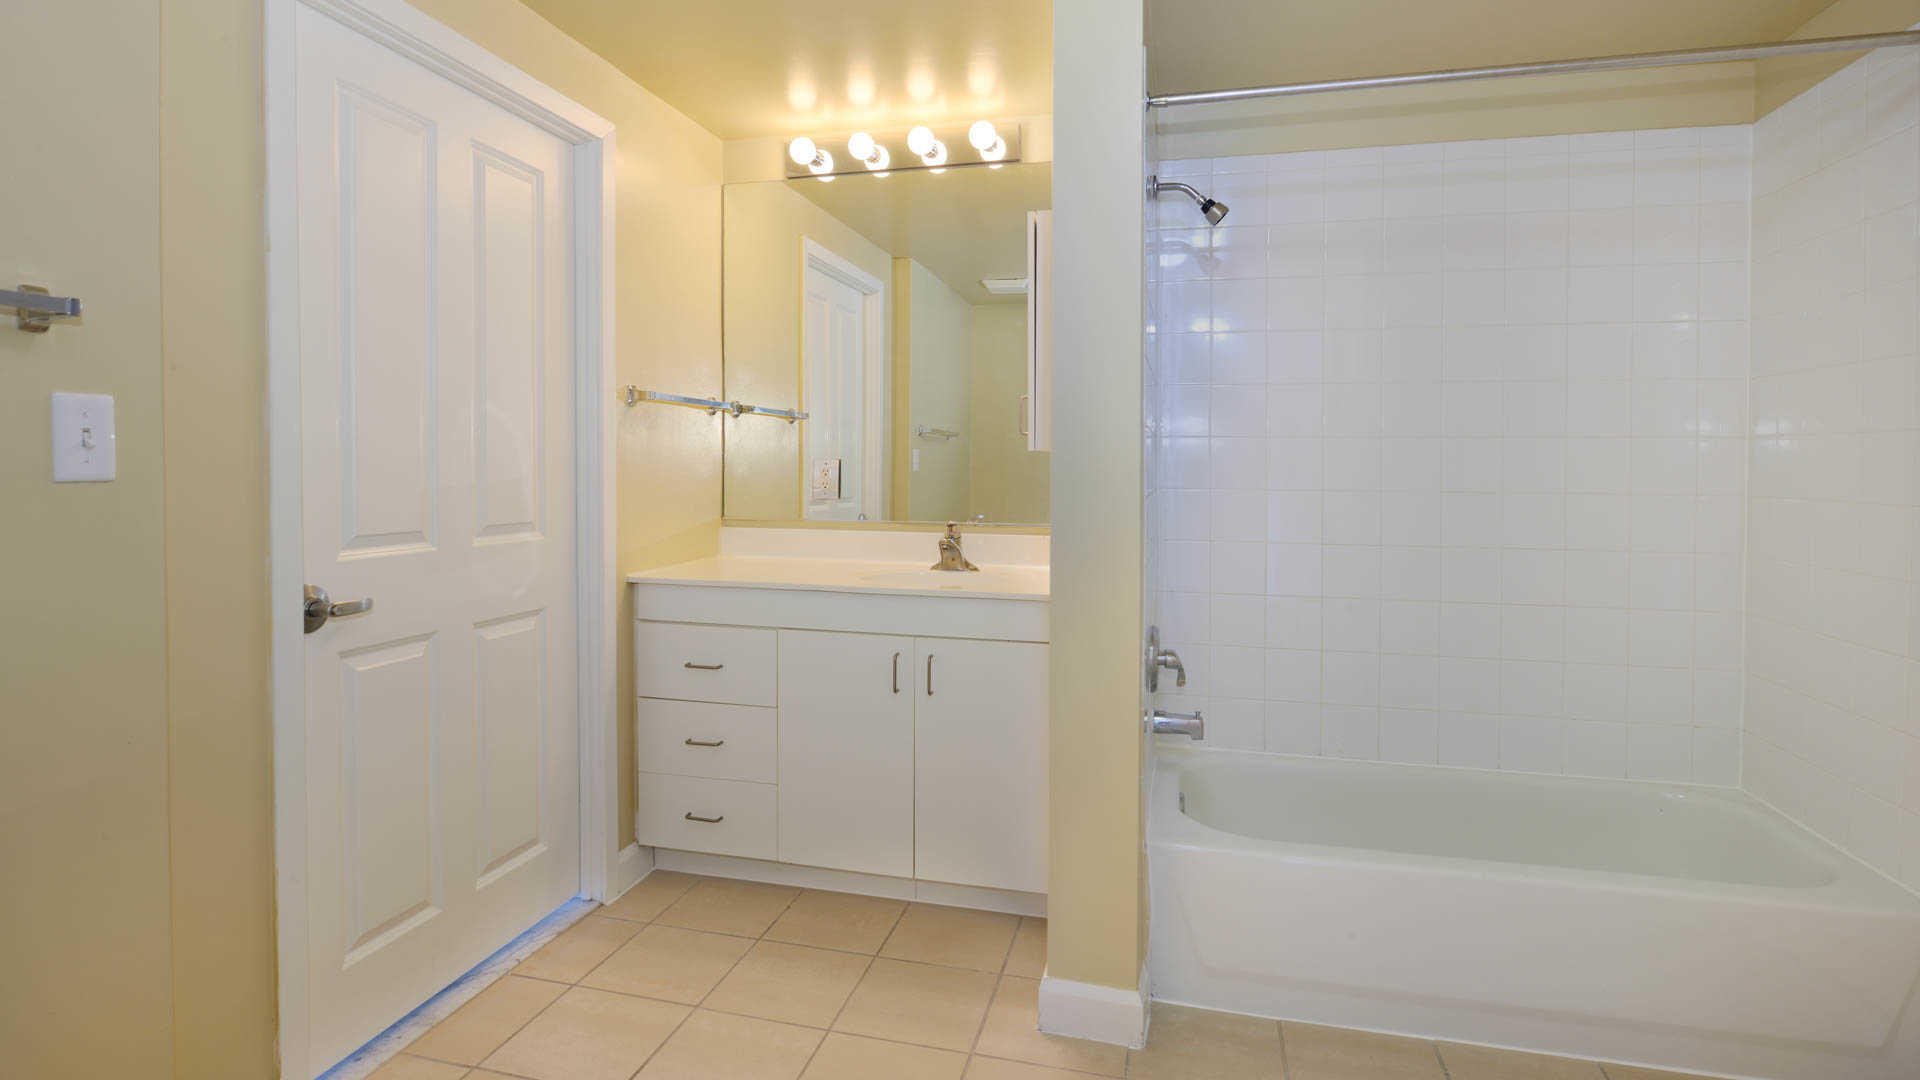 The pier apartments bathroom